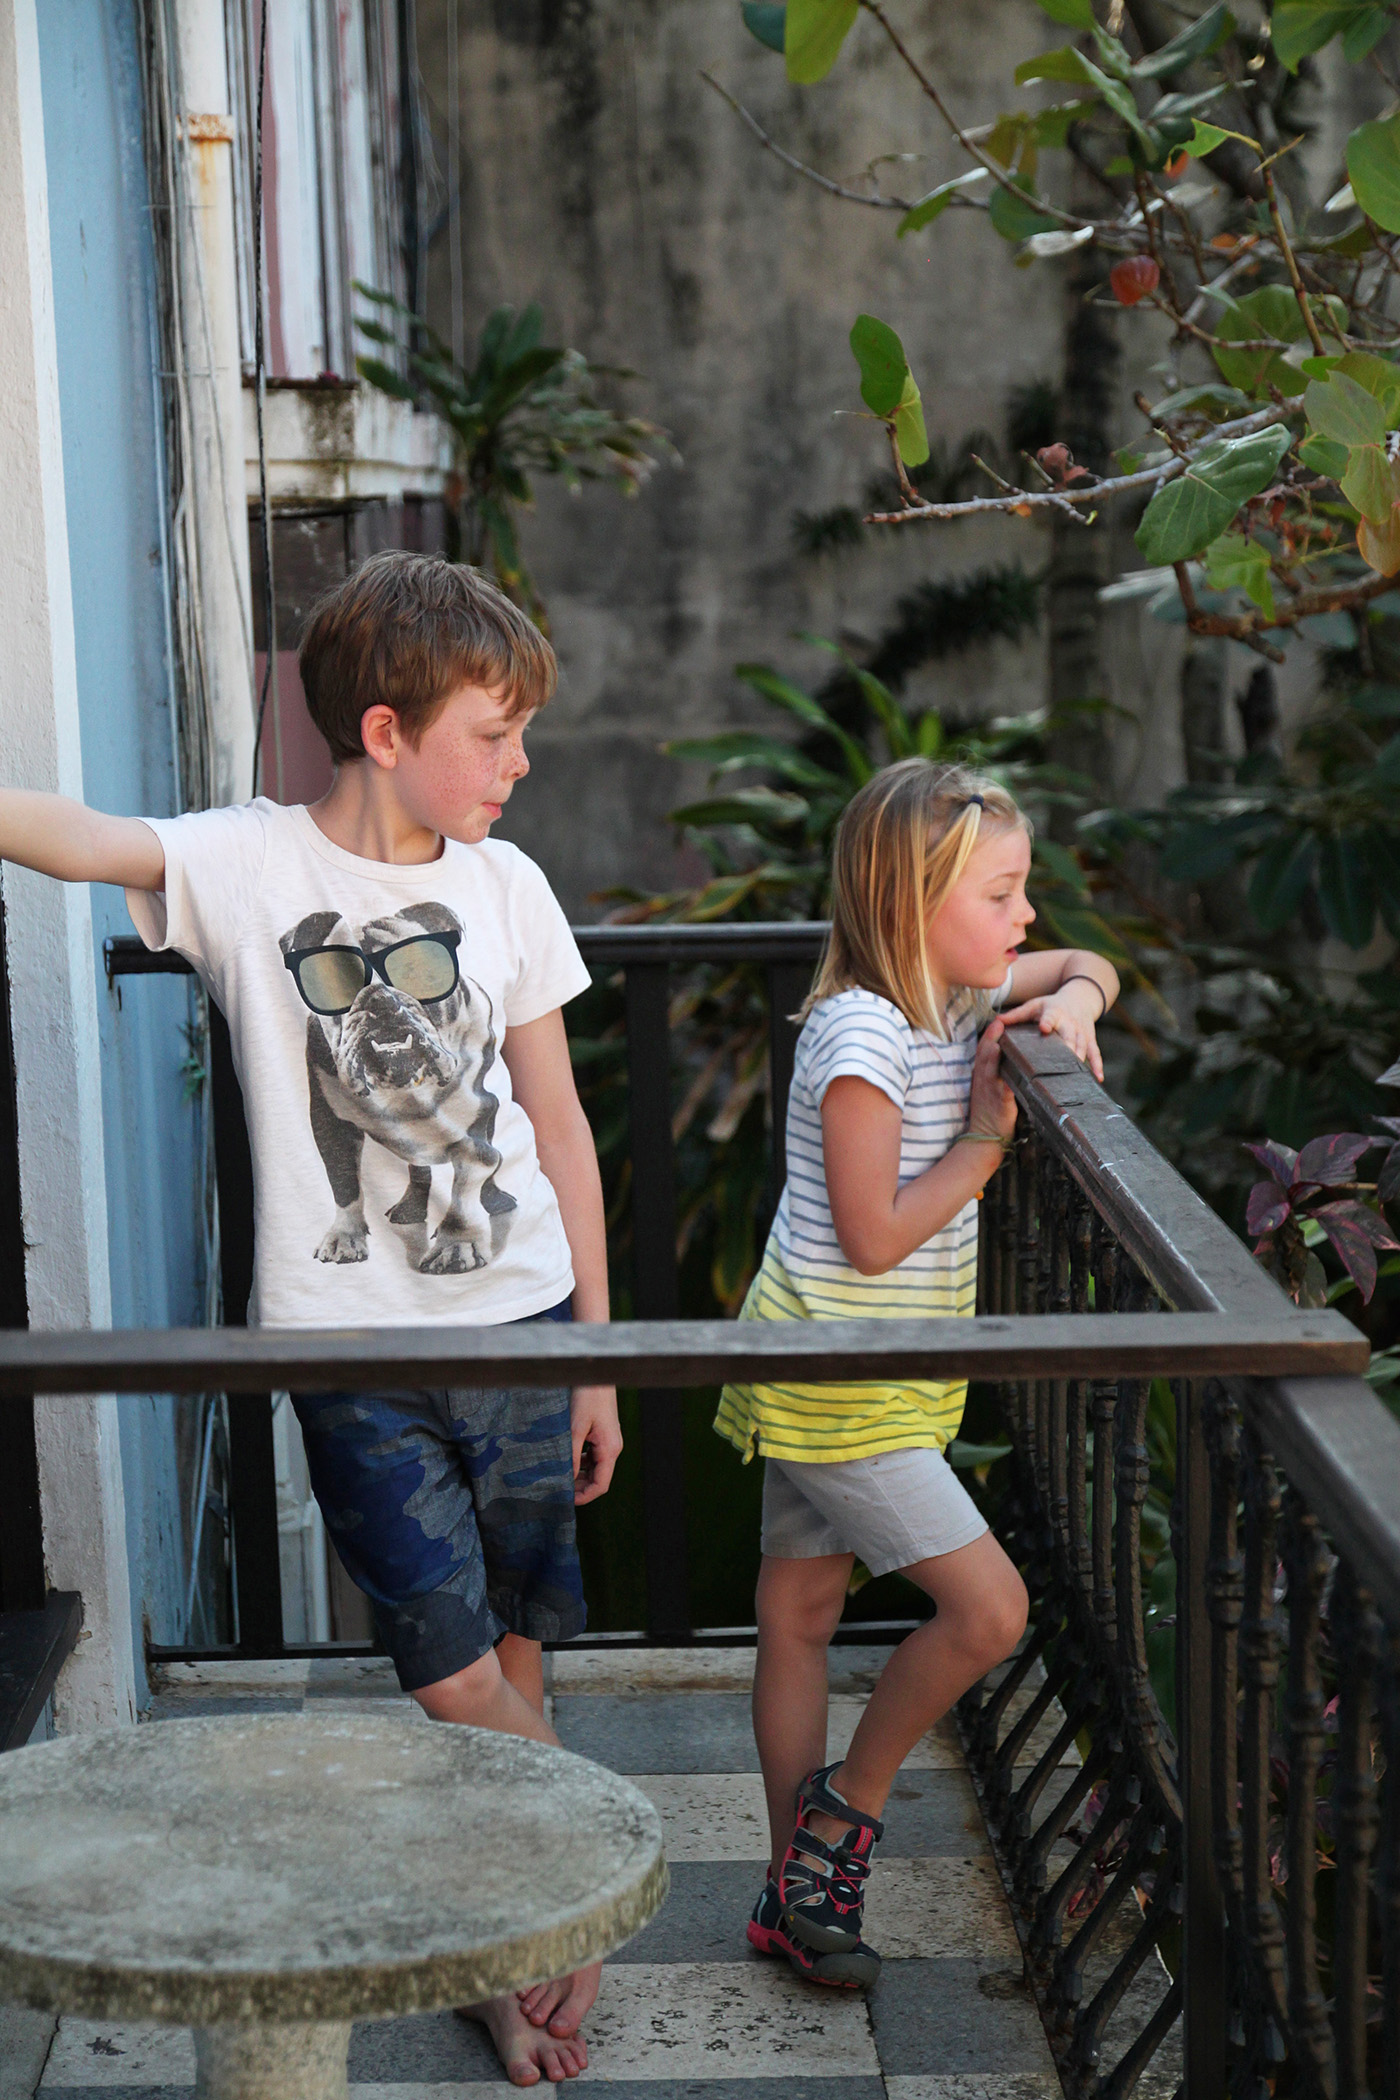 Gallery Inn Old San Juan kids on balcony by Justine Hand